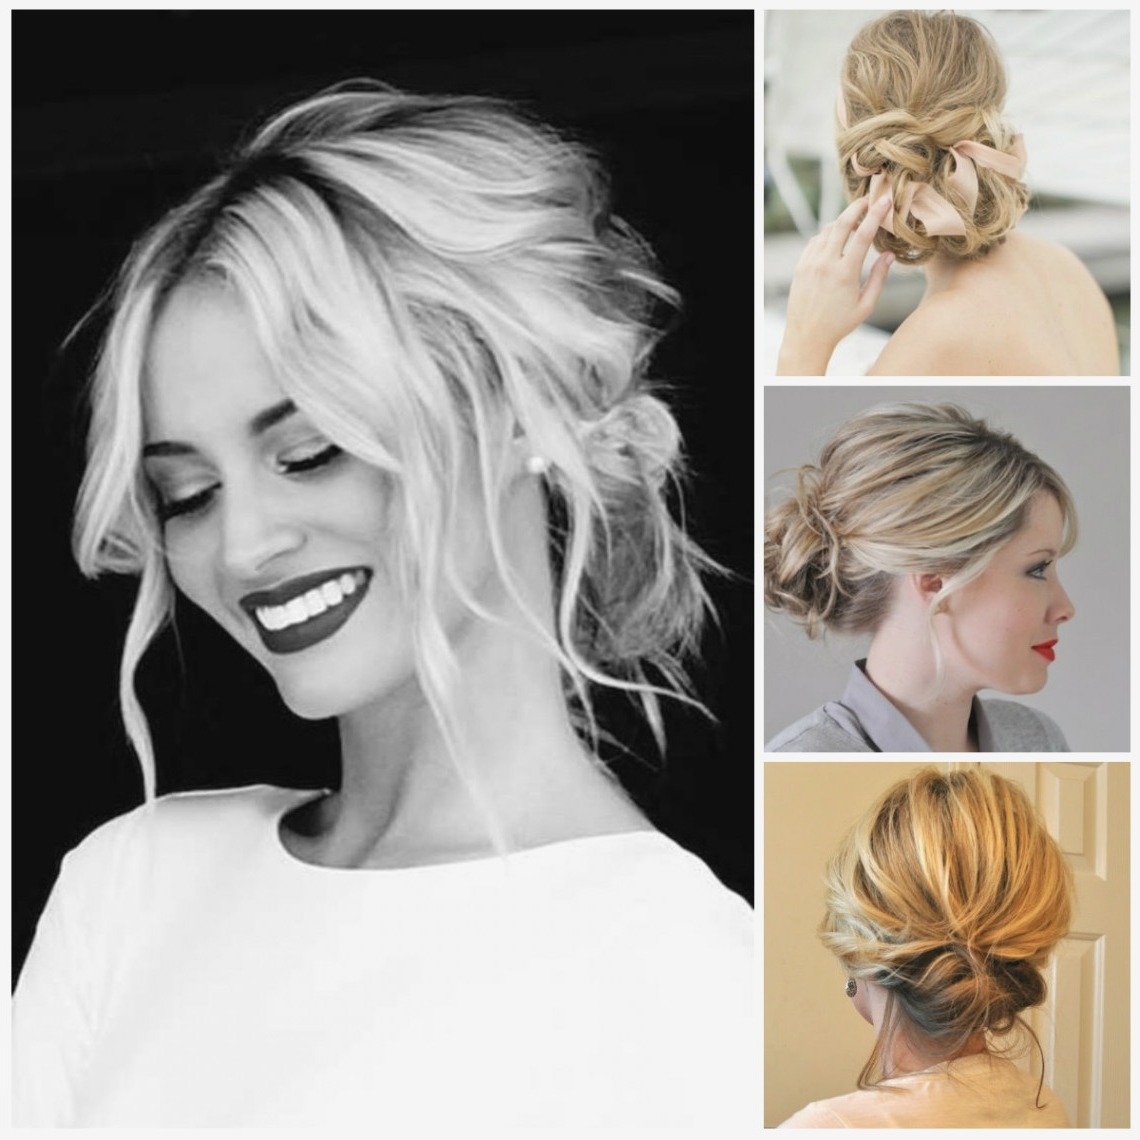 Trendy Classic Wedding Hairstyles For Medium Length Hair With Tender Updos For Medium Length Hair (View 6 of 15)